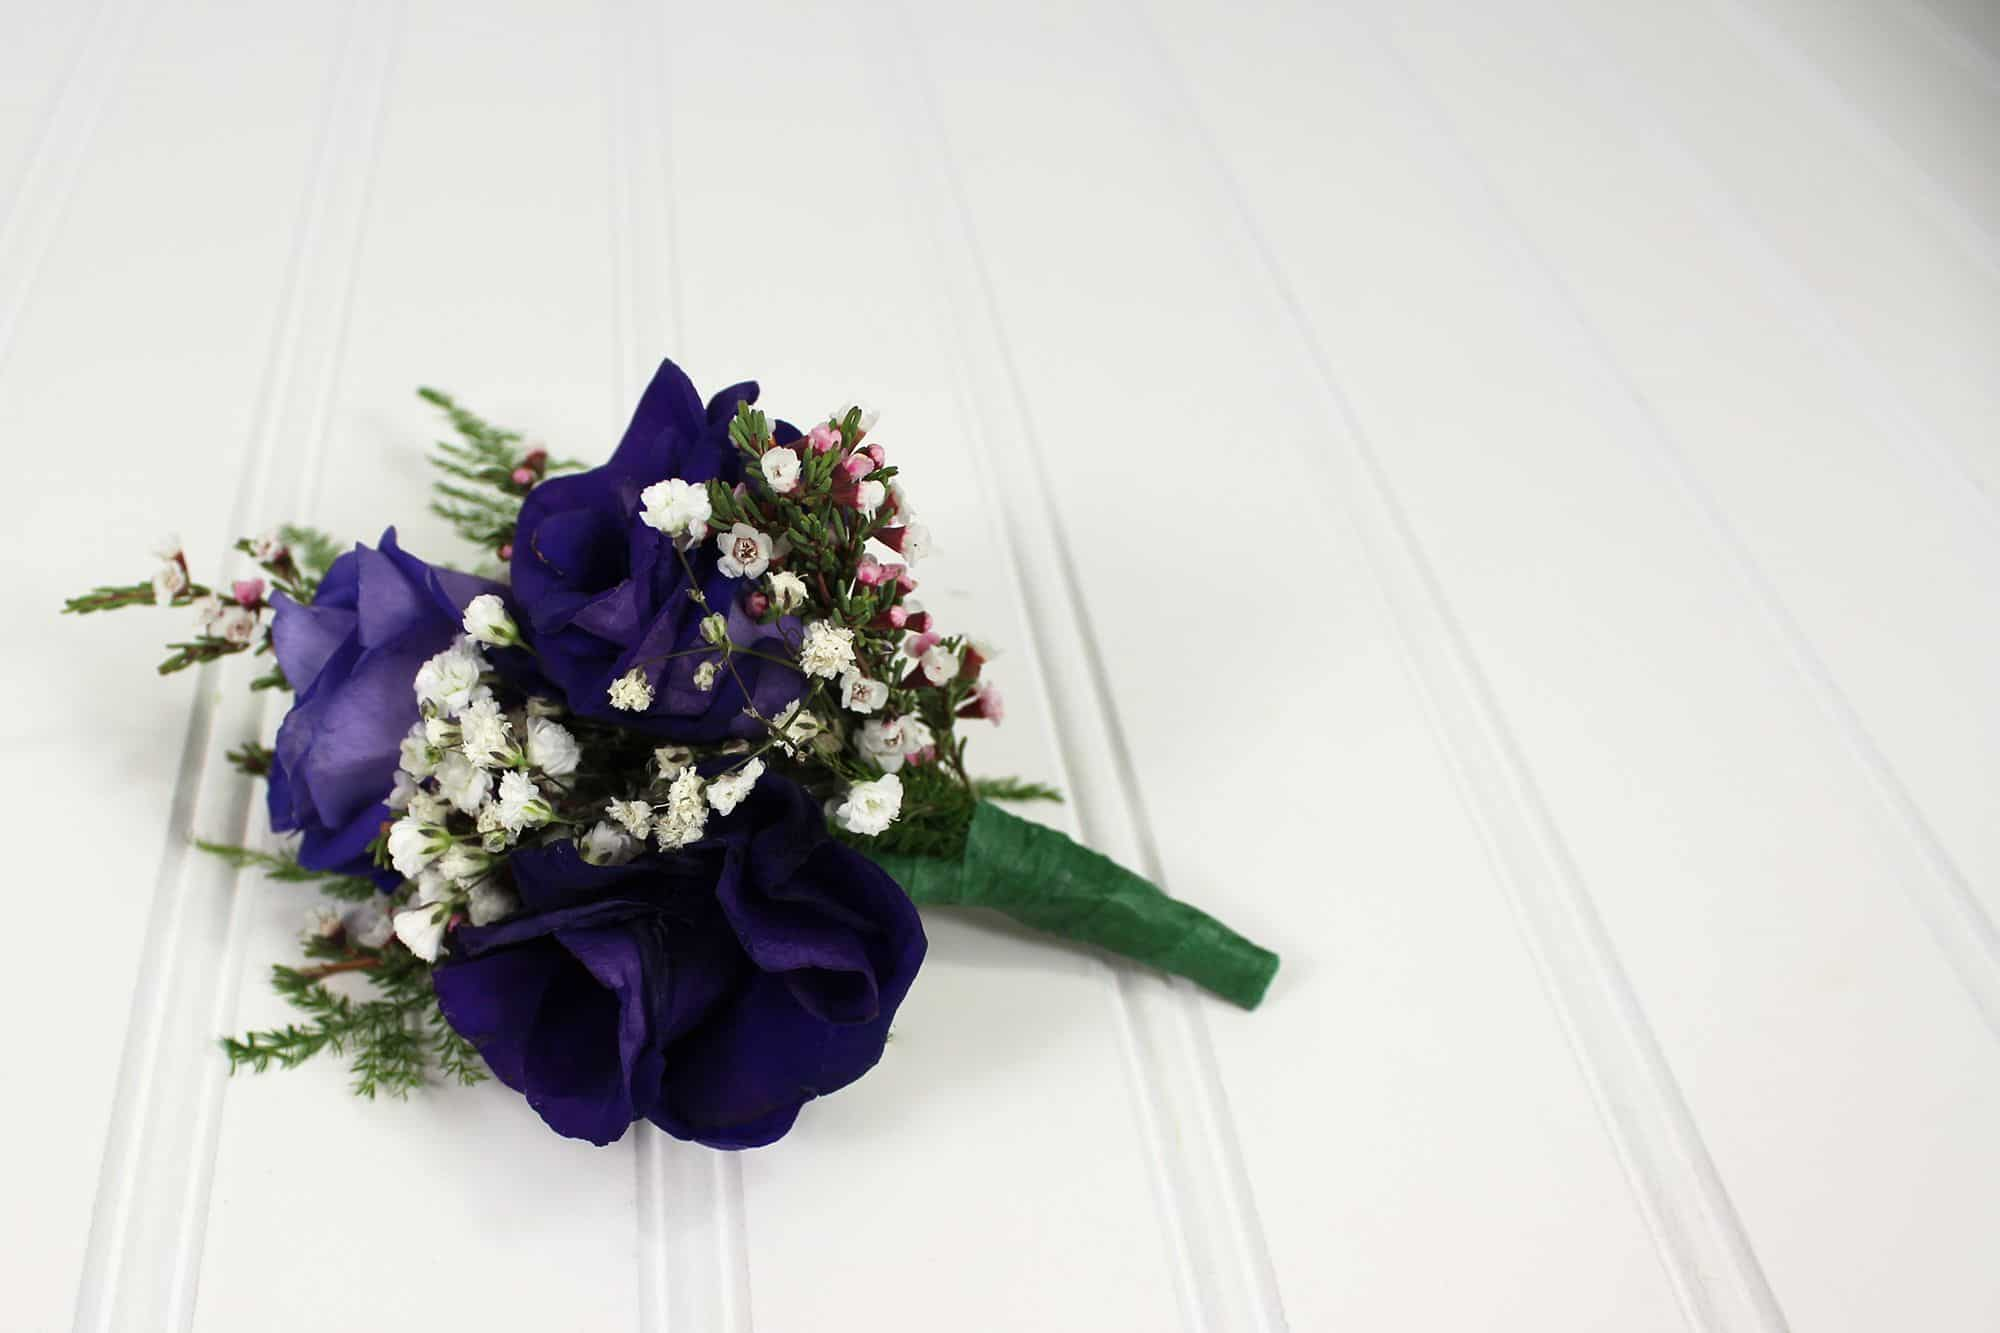 DIY Boutonniere Tutorial with purple lisianthus